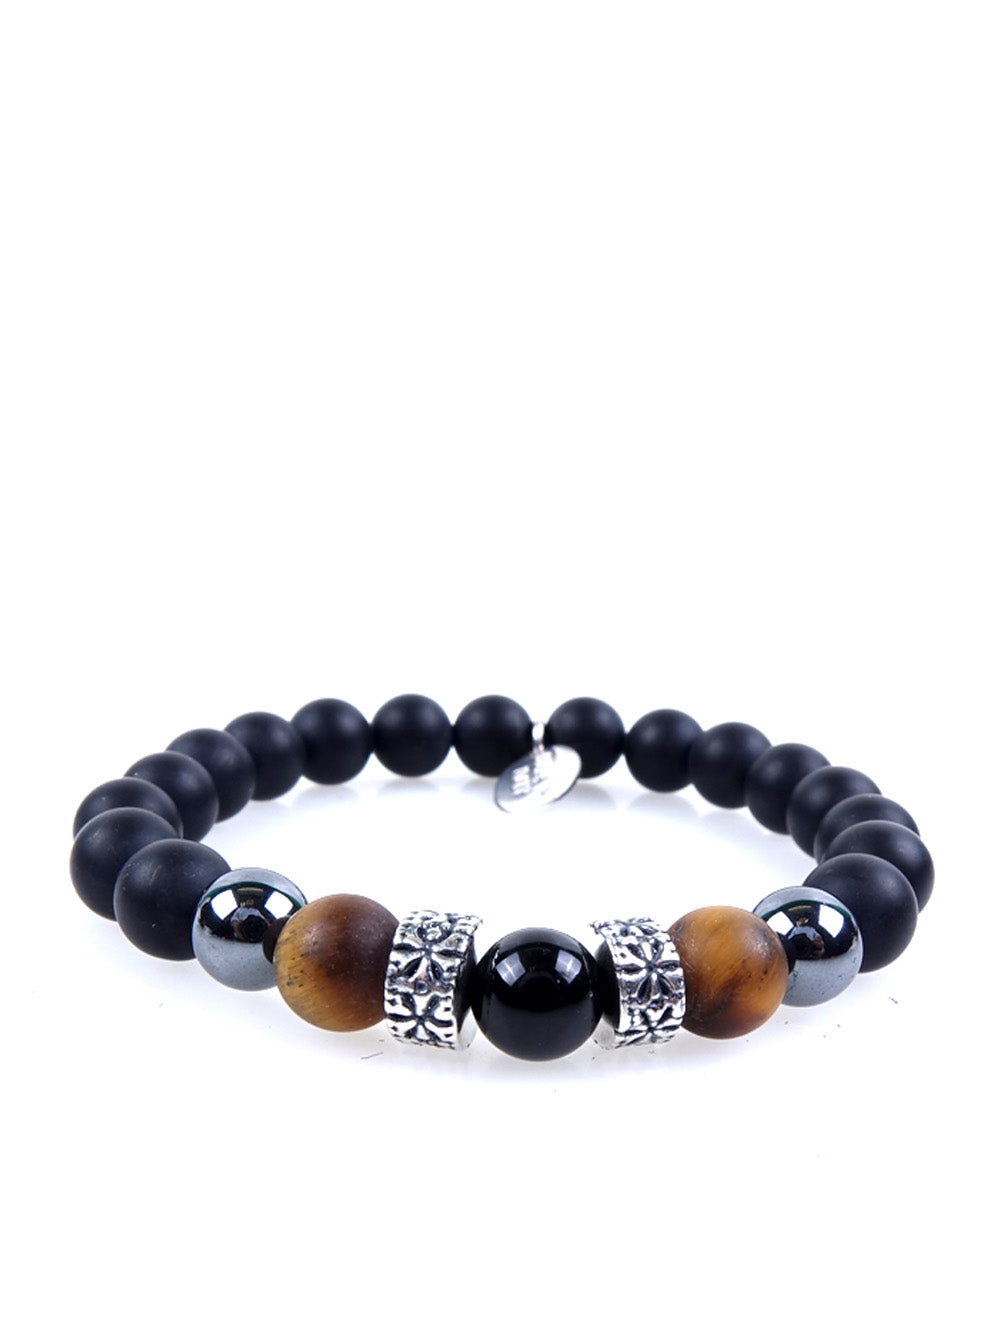 Stone bracelet • TRIBAL Collection • Satin onyx, tiger eye, hematite and 925 silver